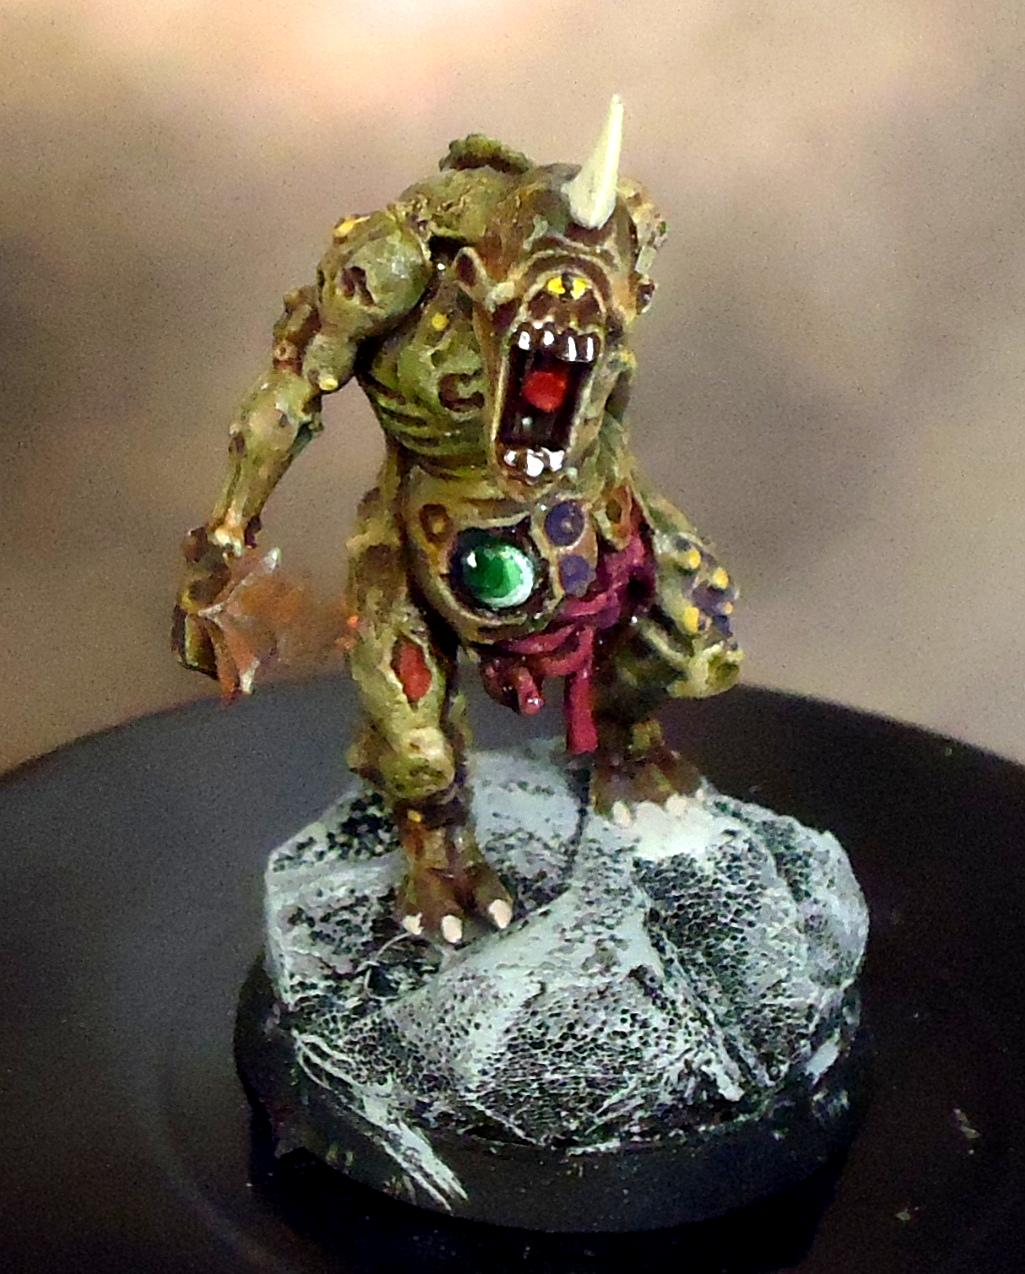 Chaos, Daemons, Decay, Nurgle, Plaguebearers, Rot, Rust